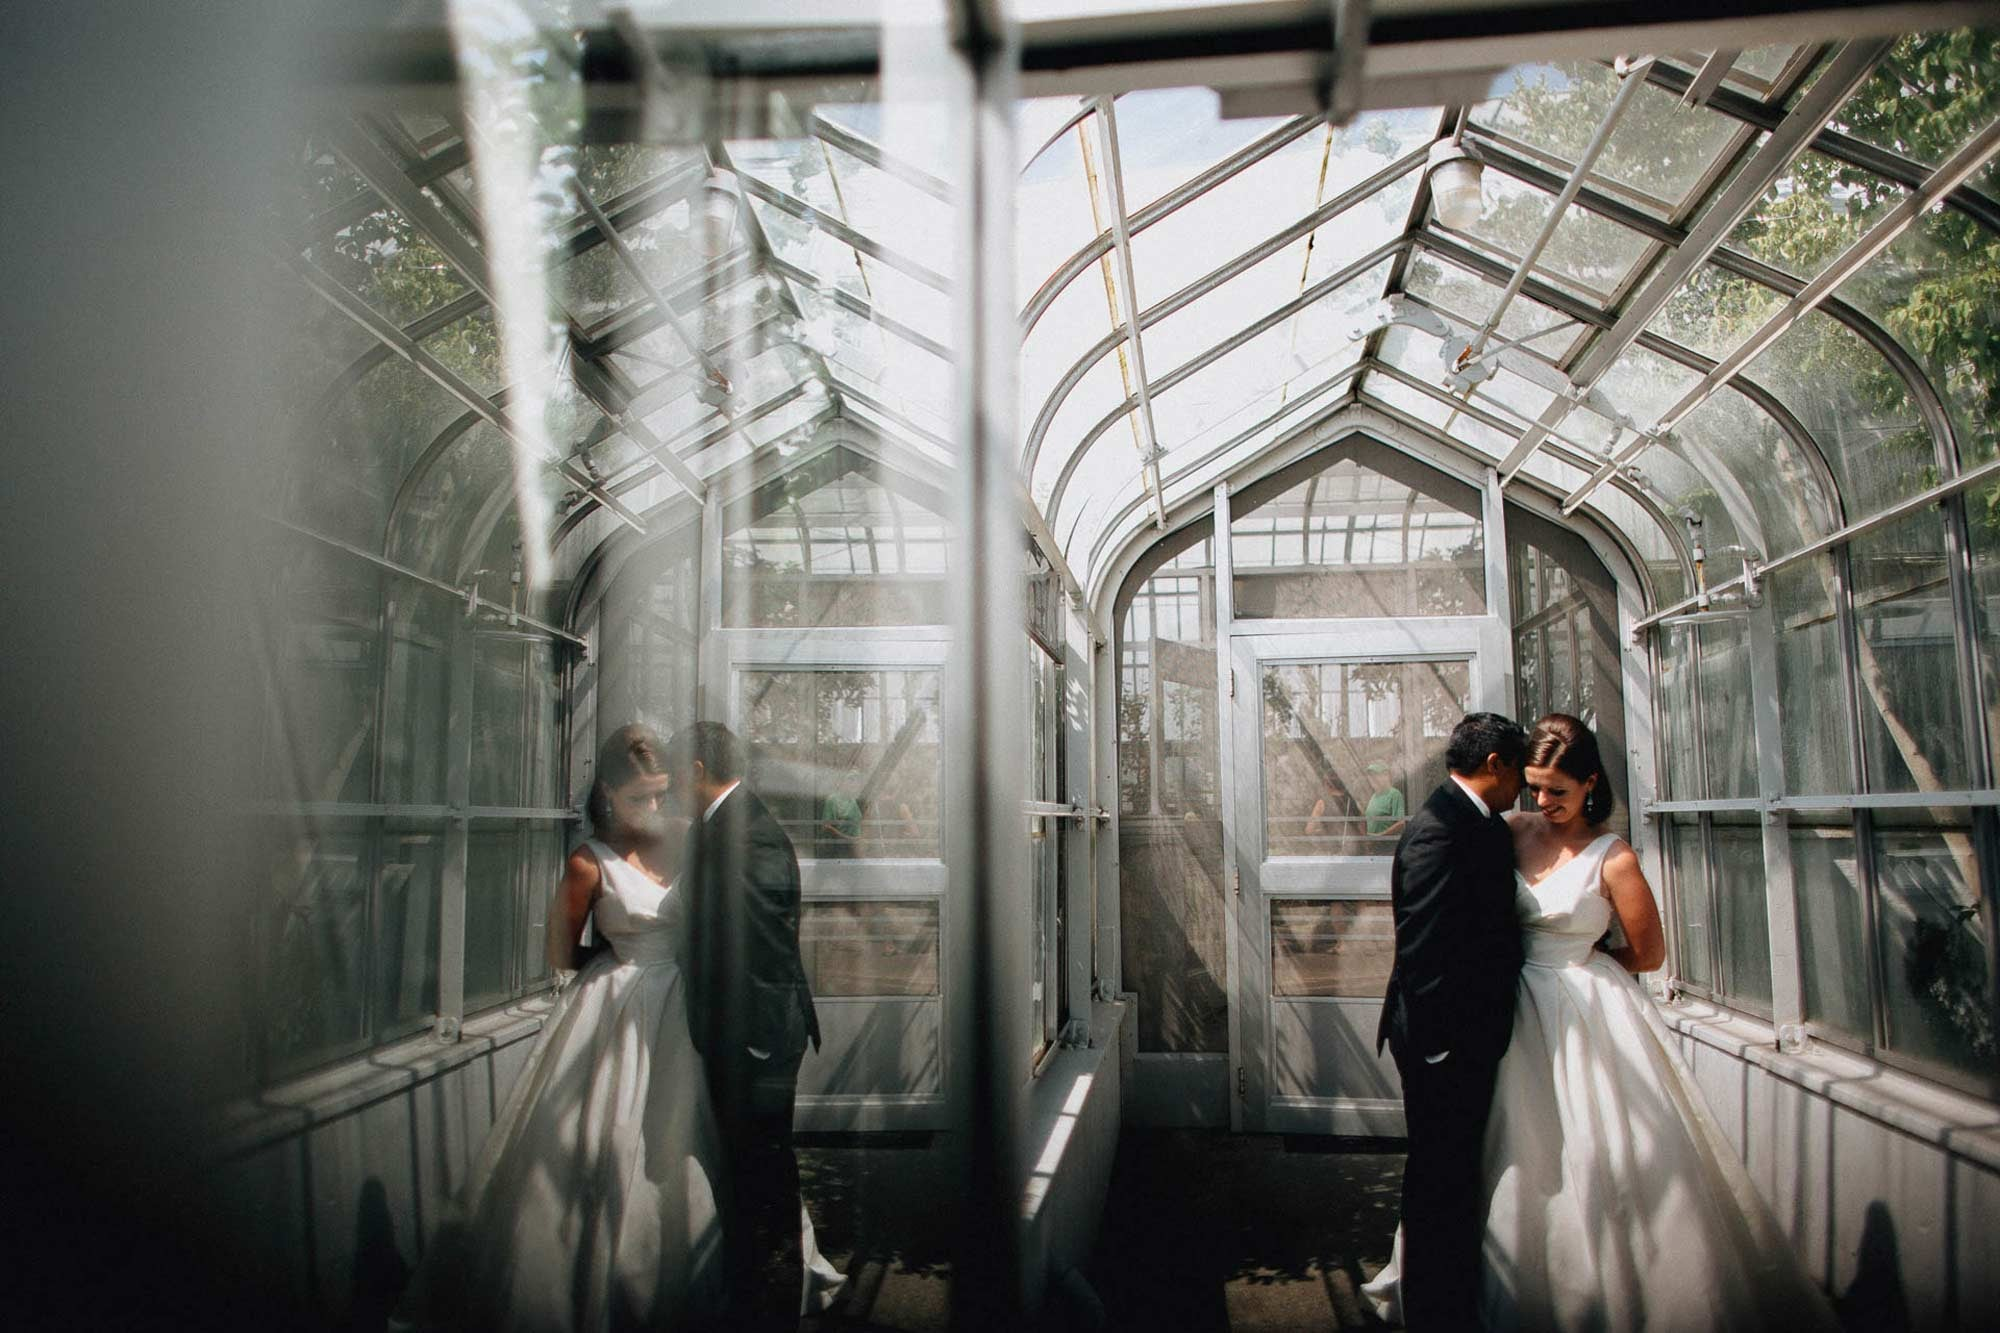 The-Brauns-2015-152-Ashley-Vipin-Krohn-Conservatory-Eden-Park-Wedding.jpg